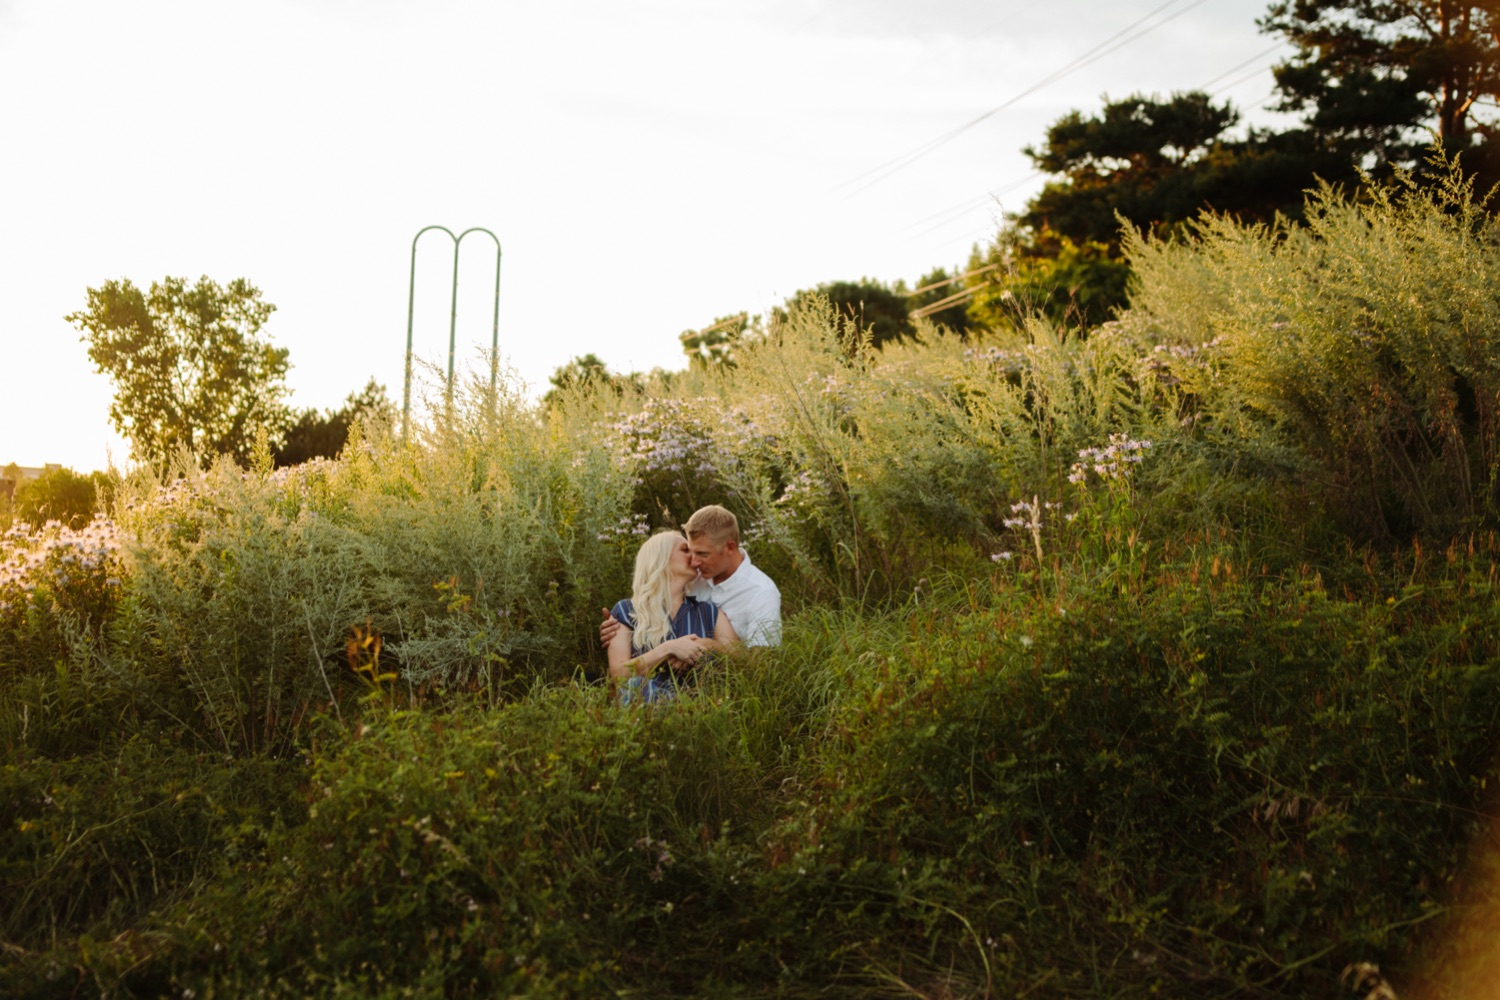 Engaged couple in summer field minneapolis photo session